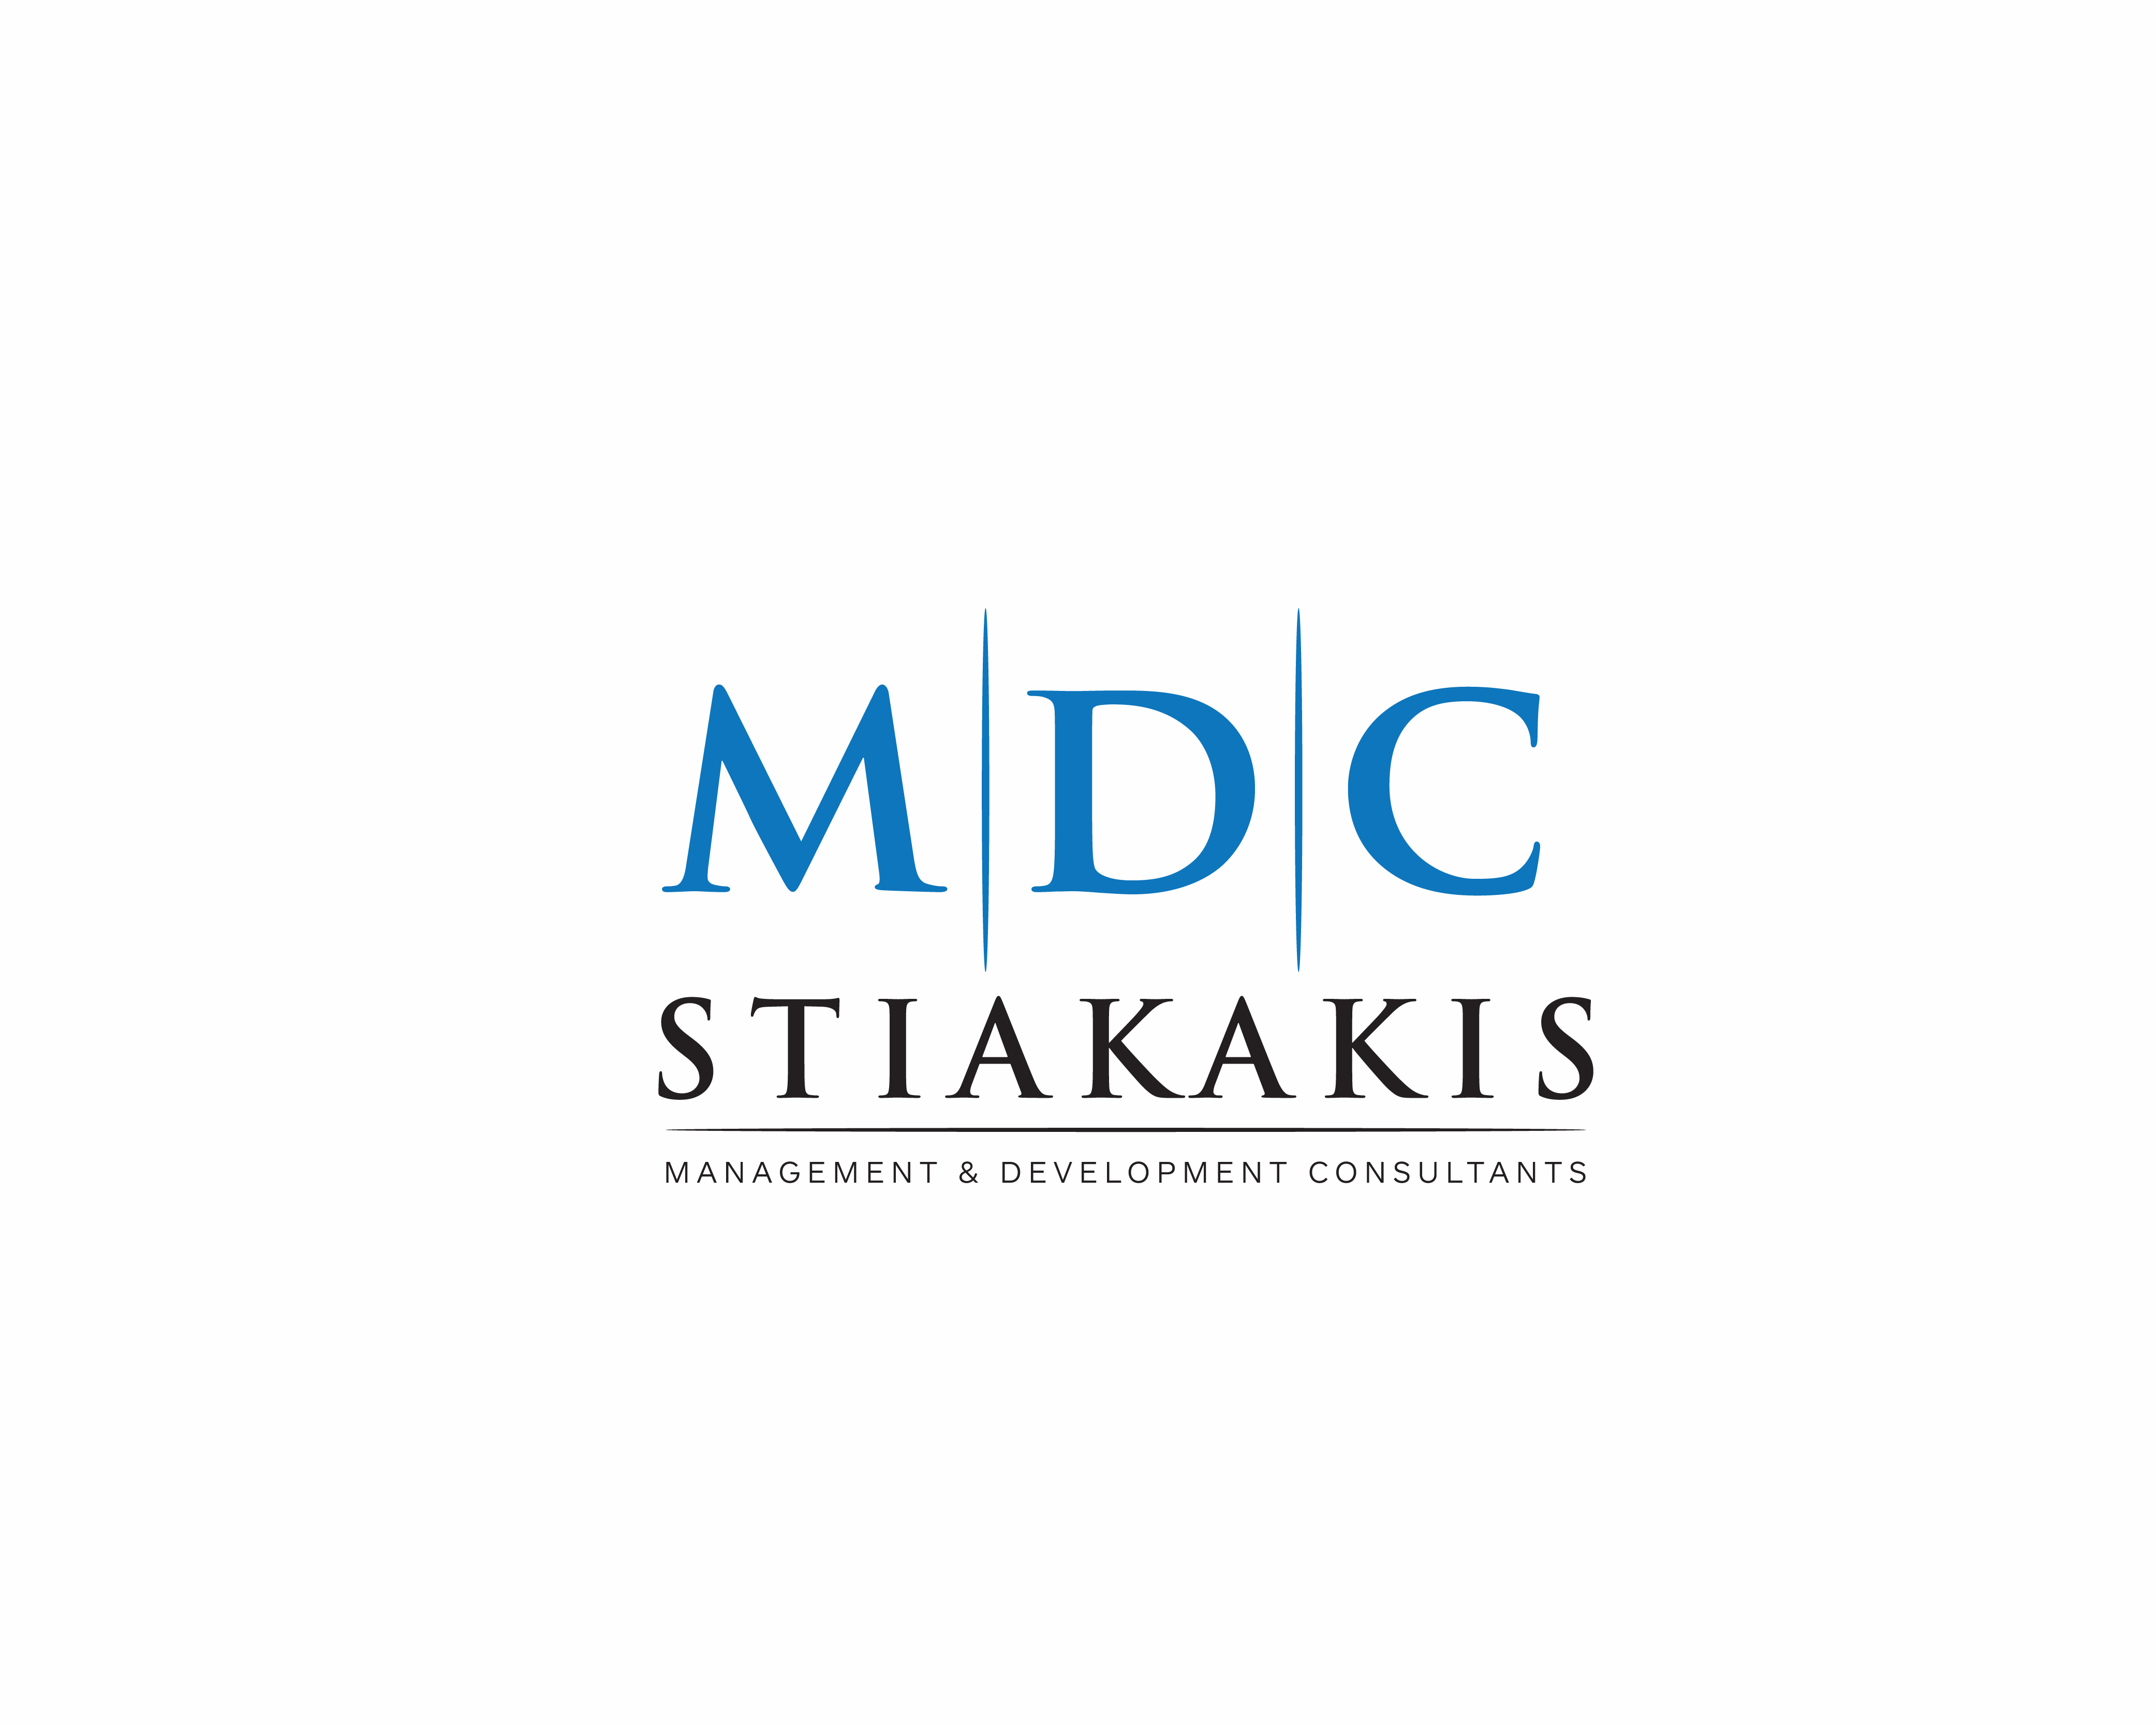 Logo Design by roc - Entry No. 19 in the Logo Design Contest Unique Logo Design Wanted for MDC STIAKAKIS.